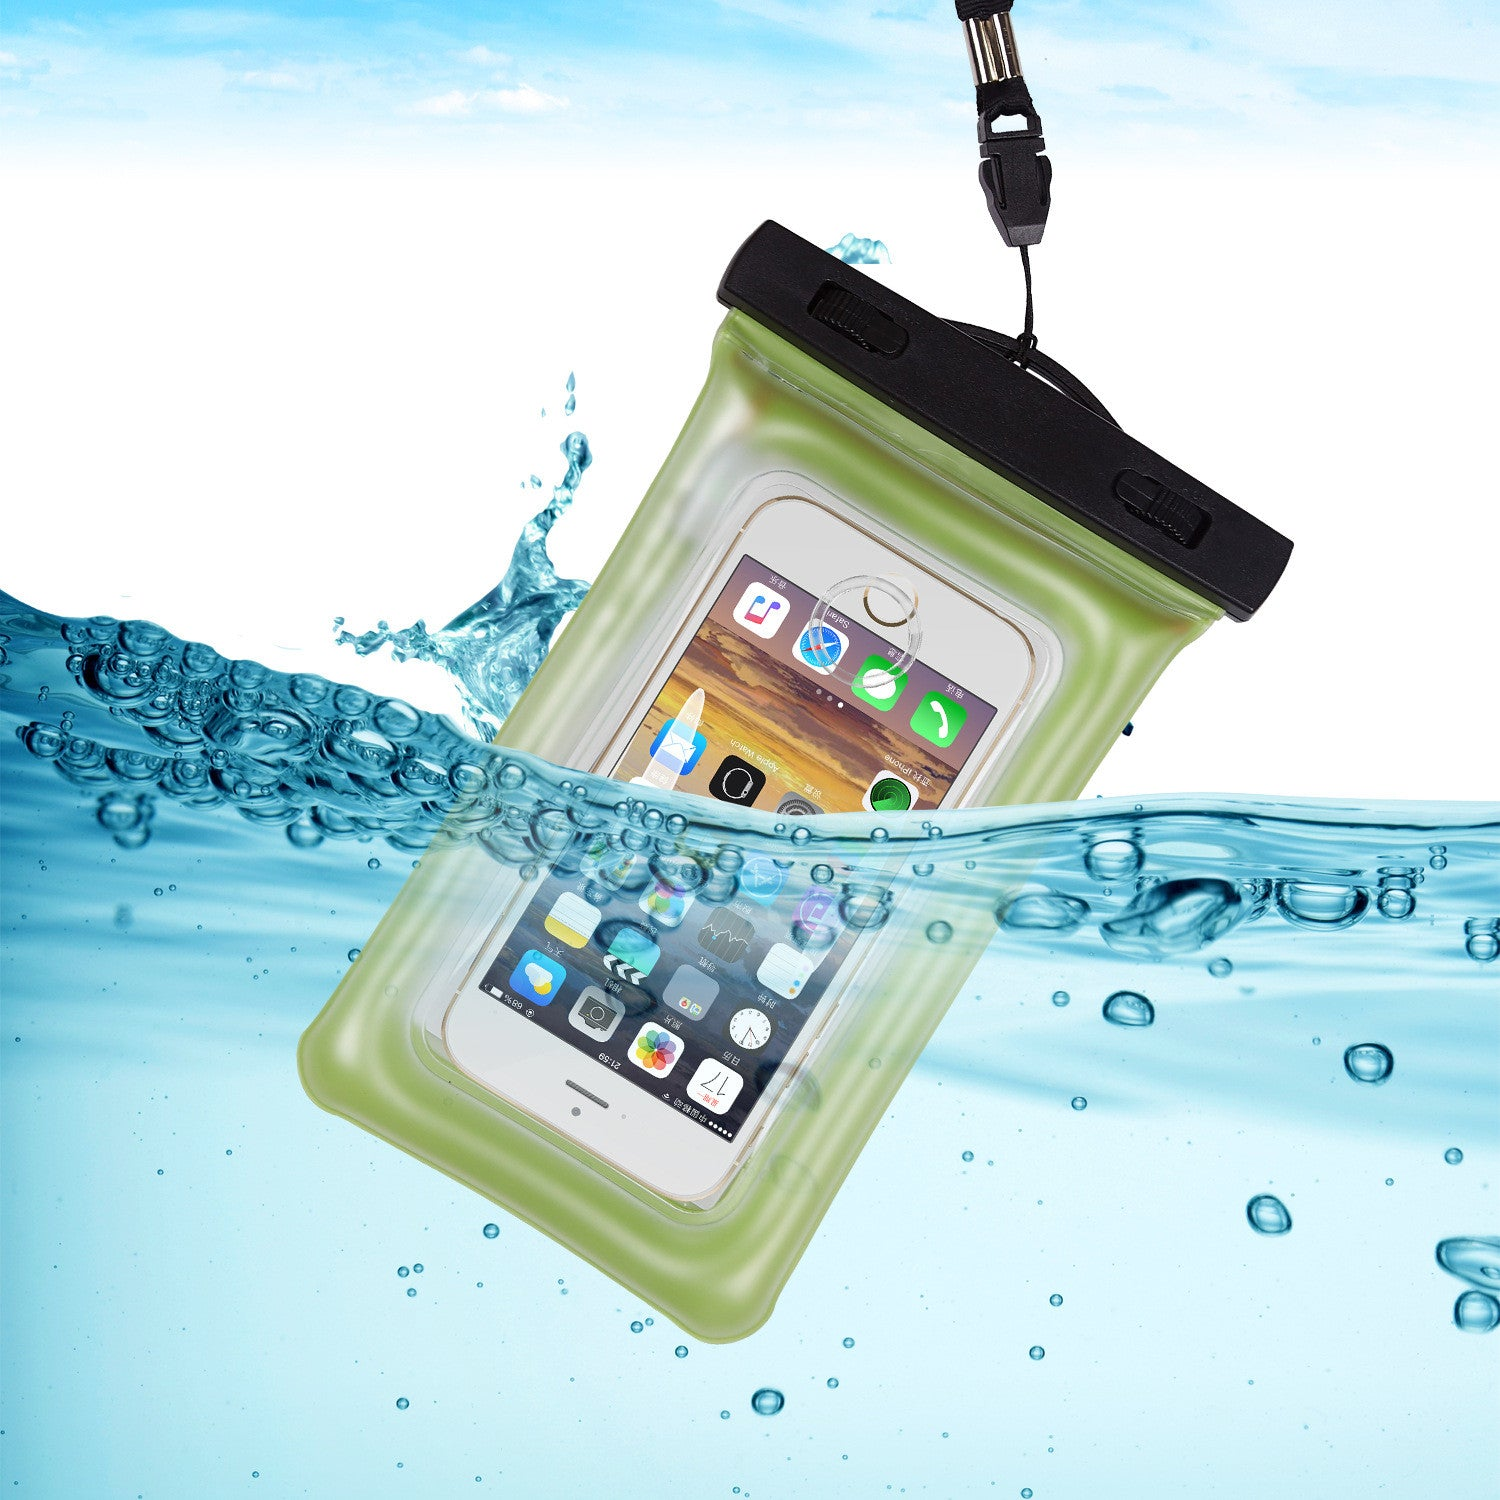 "Universal Waterproof Case Clear Dry Case Compatible with iPhone 7 /7PHome Button, For Water Activities, Skiing, Protect iPhone Samsung HTC LG Sony Nokia Motorola up to 5.5"" Diagonal"